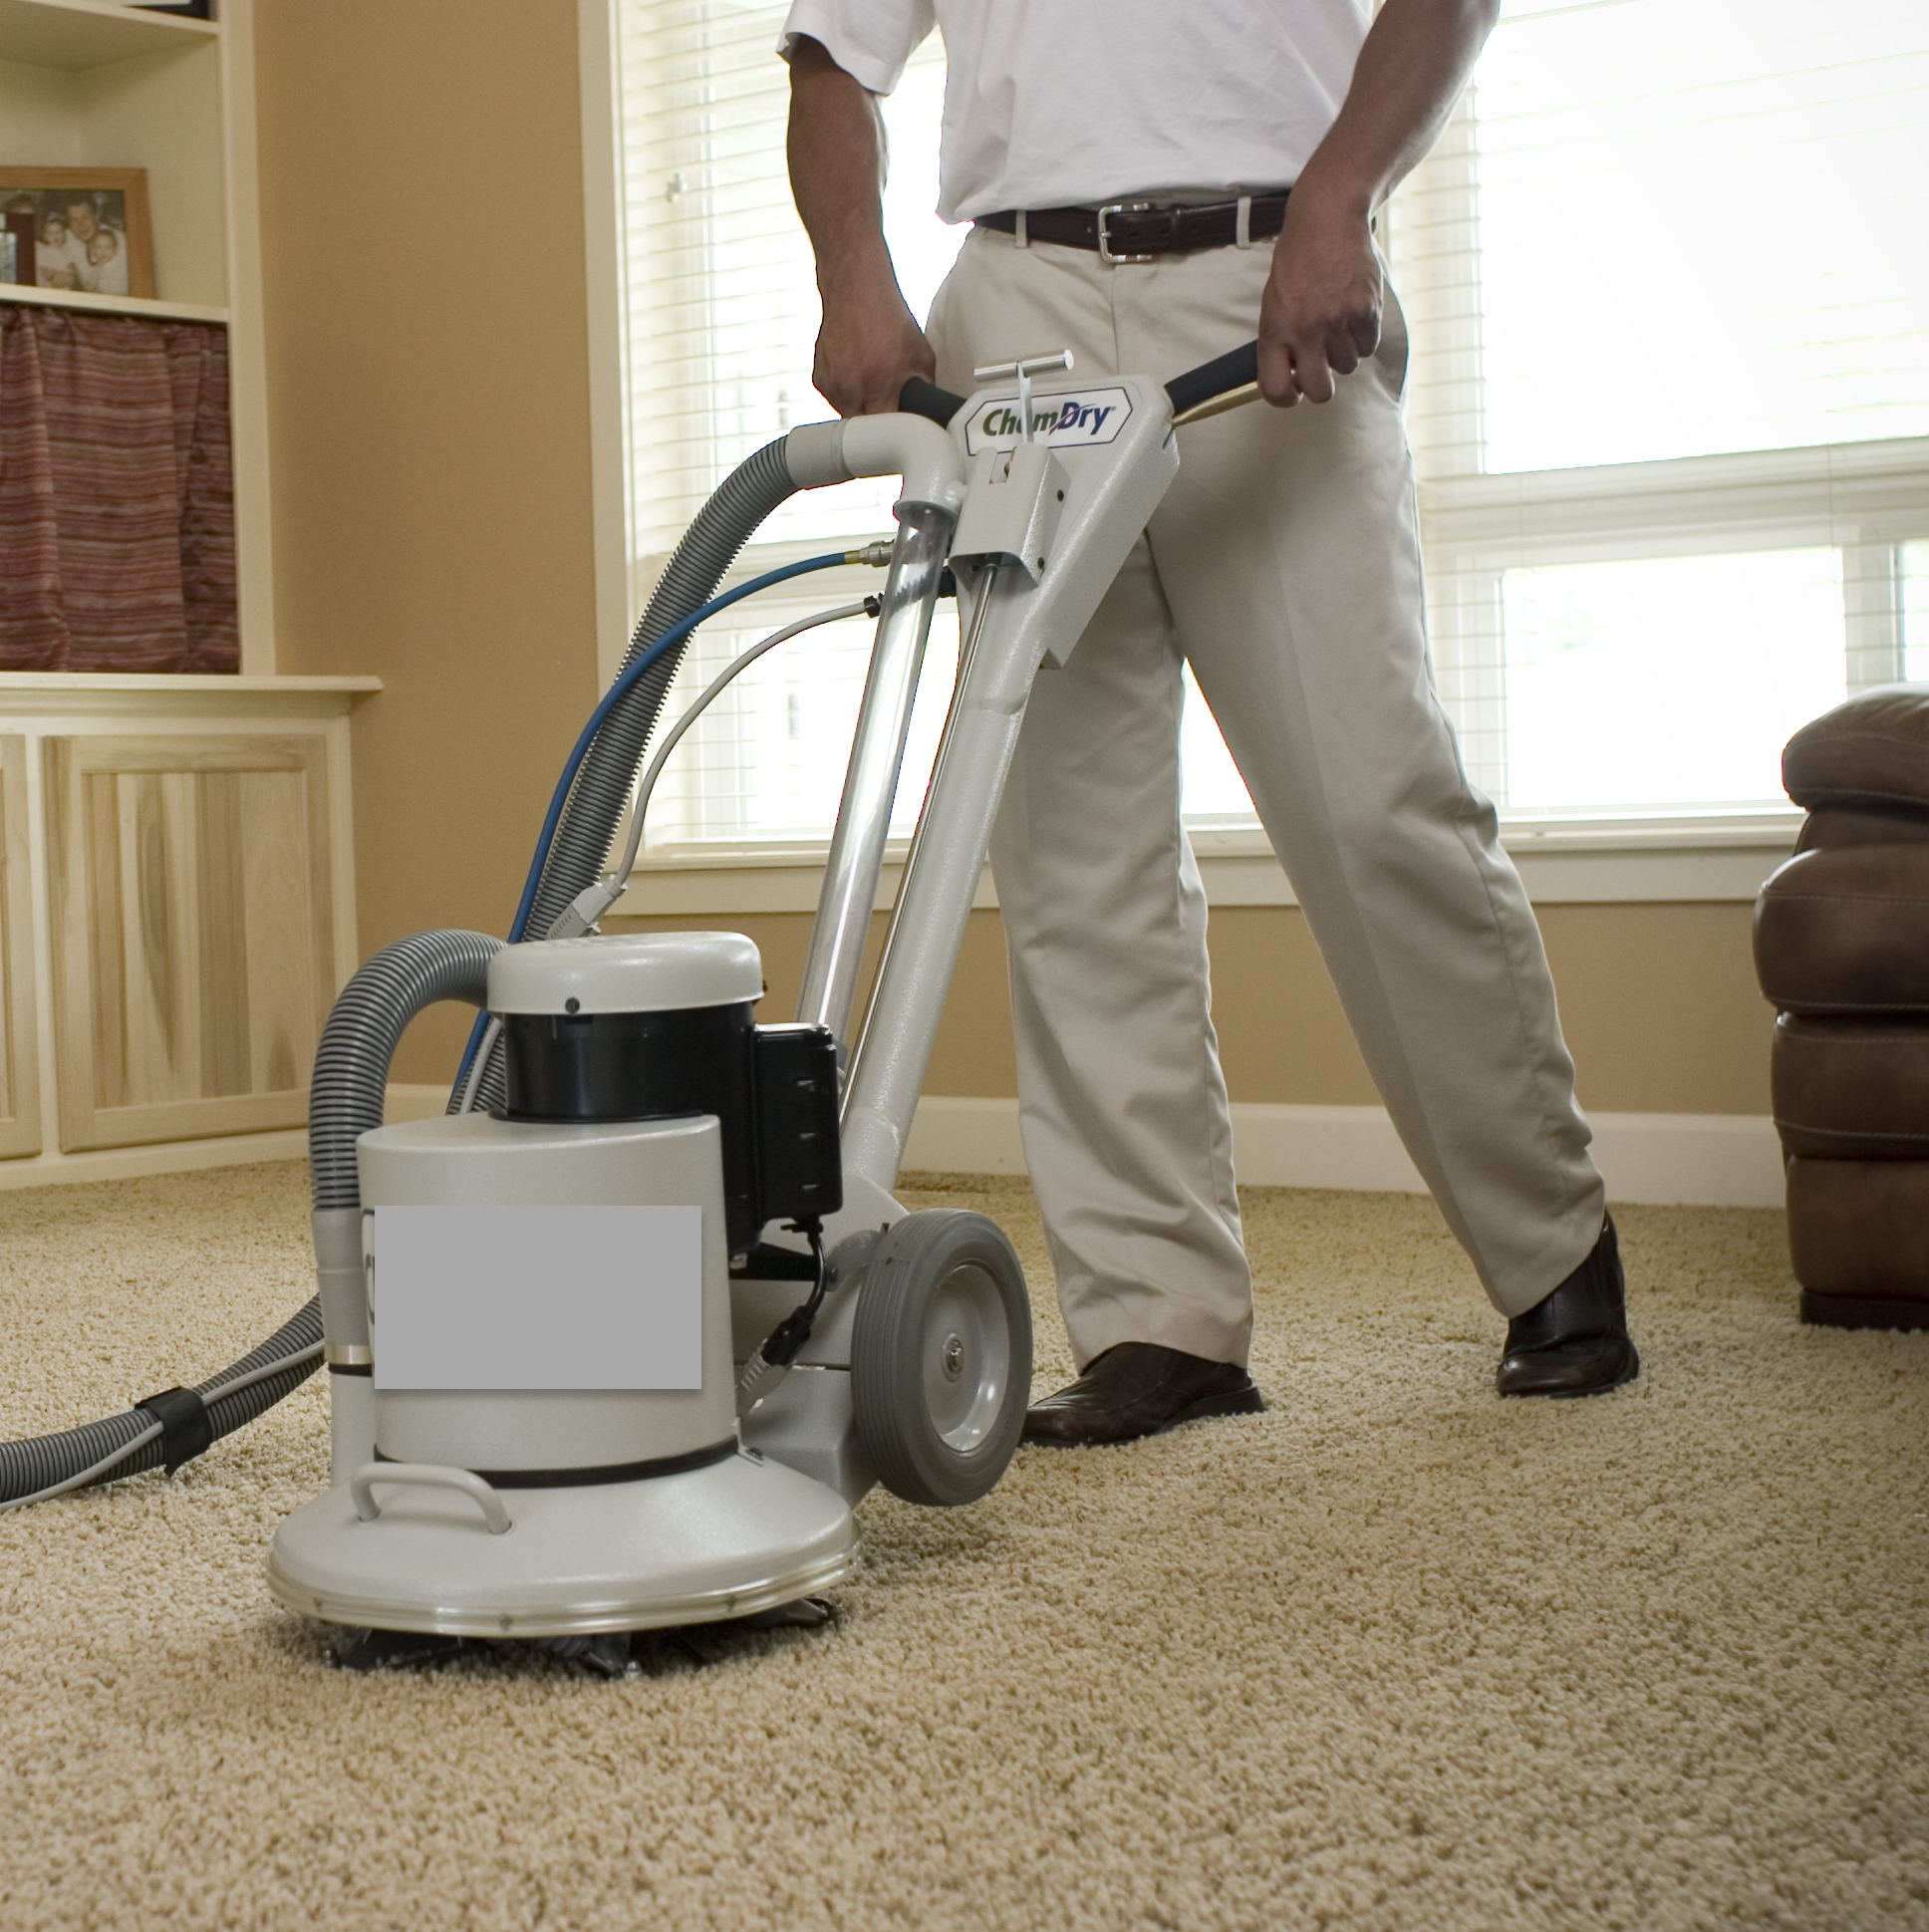 The 10 Best Cheap Carpet Cleaning Services 2019